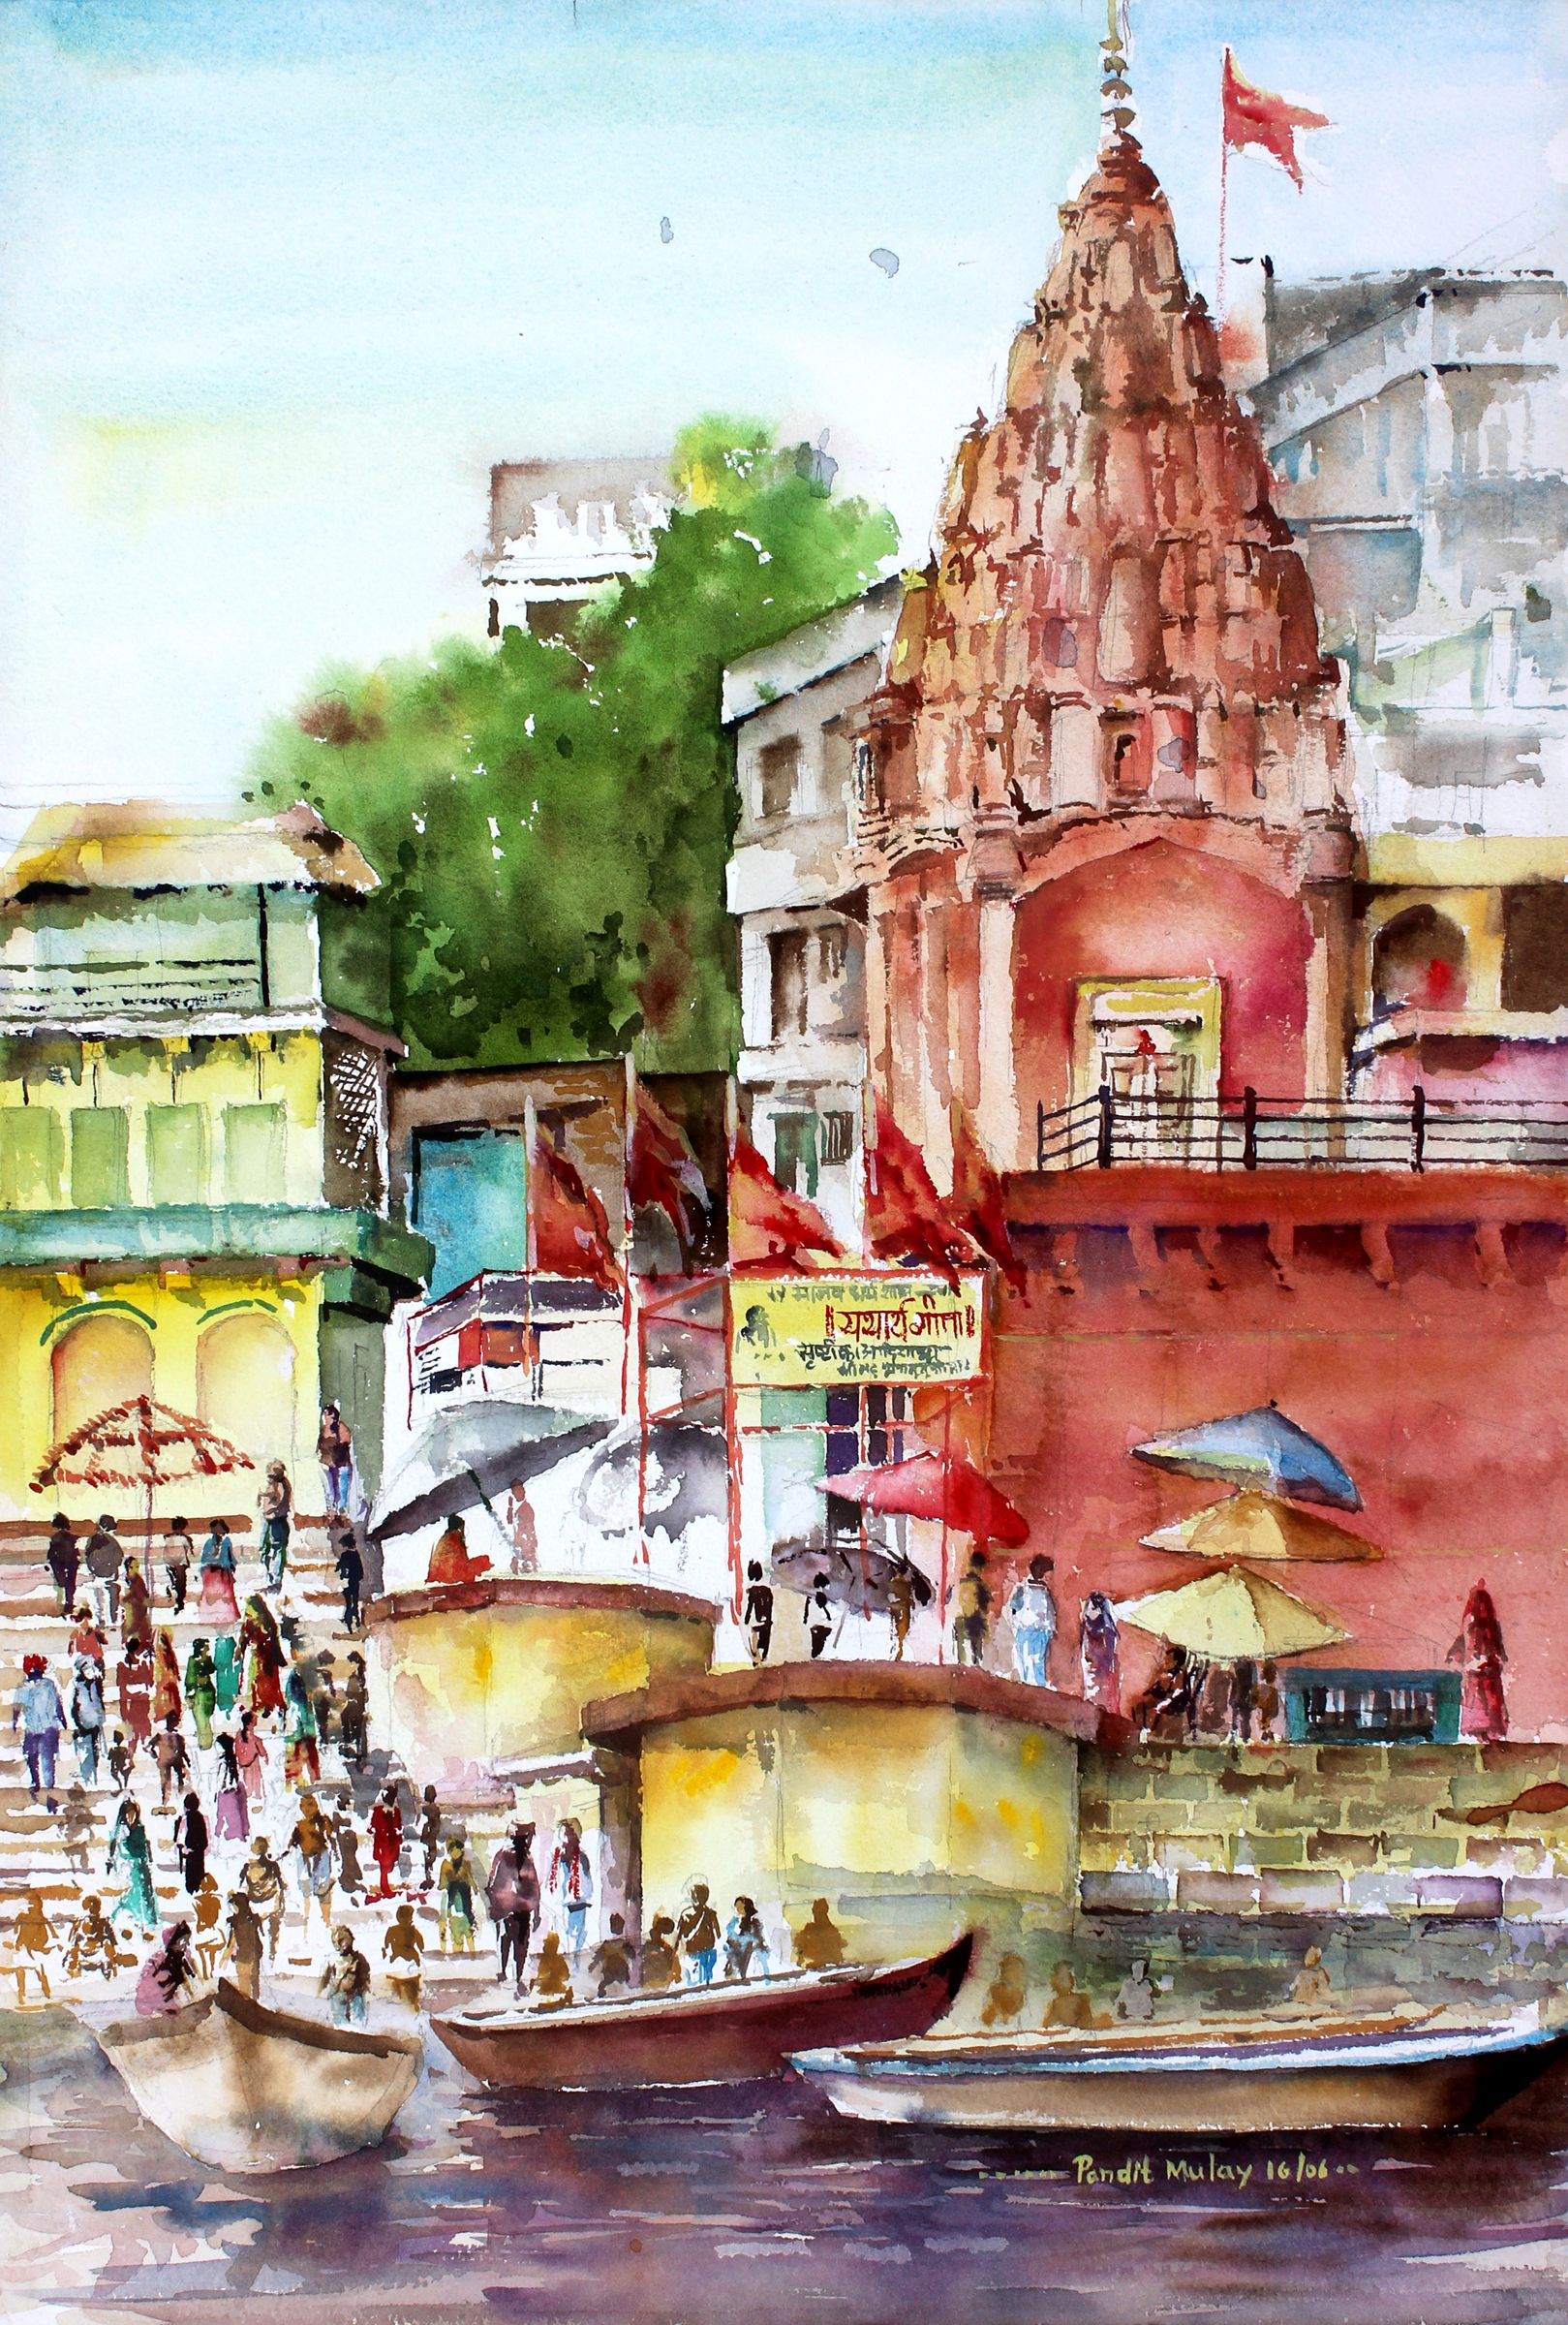 Art farm animal watercolor painting on canvas art 8x10 artsyhome - Temple At Banaras Ghat Painting By Artist Pandit Mulay Gallerist